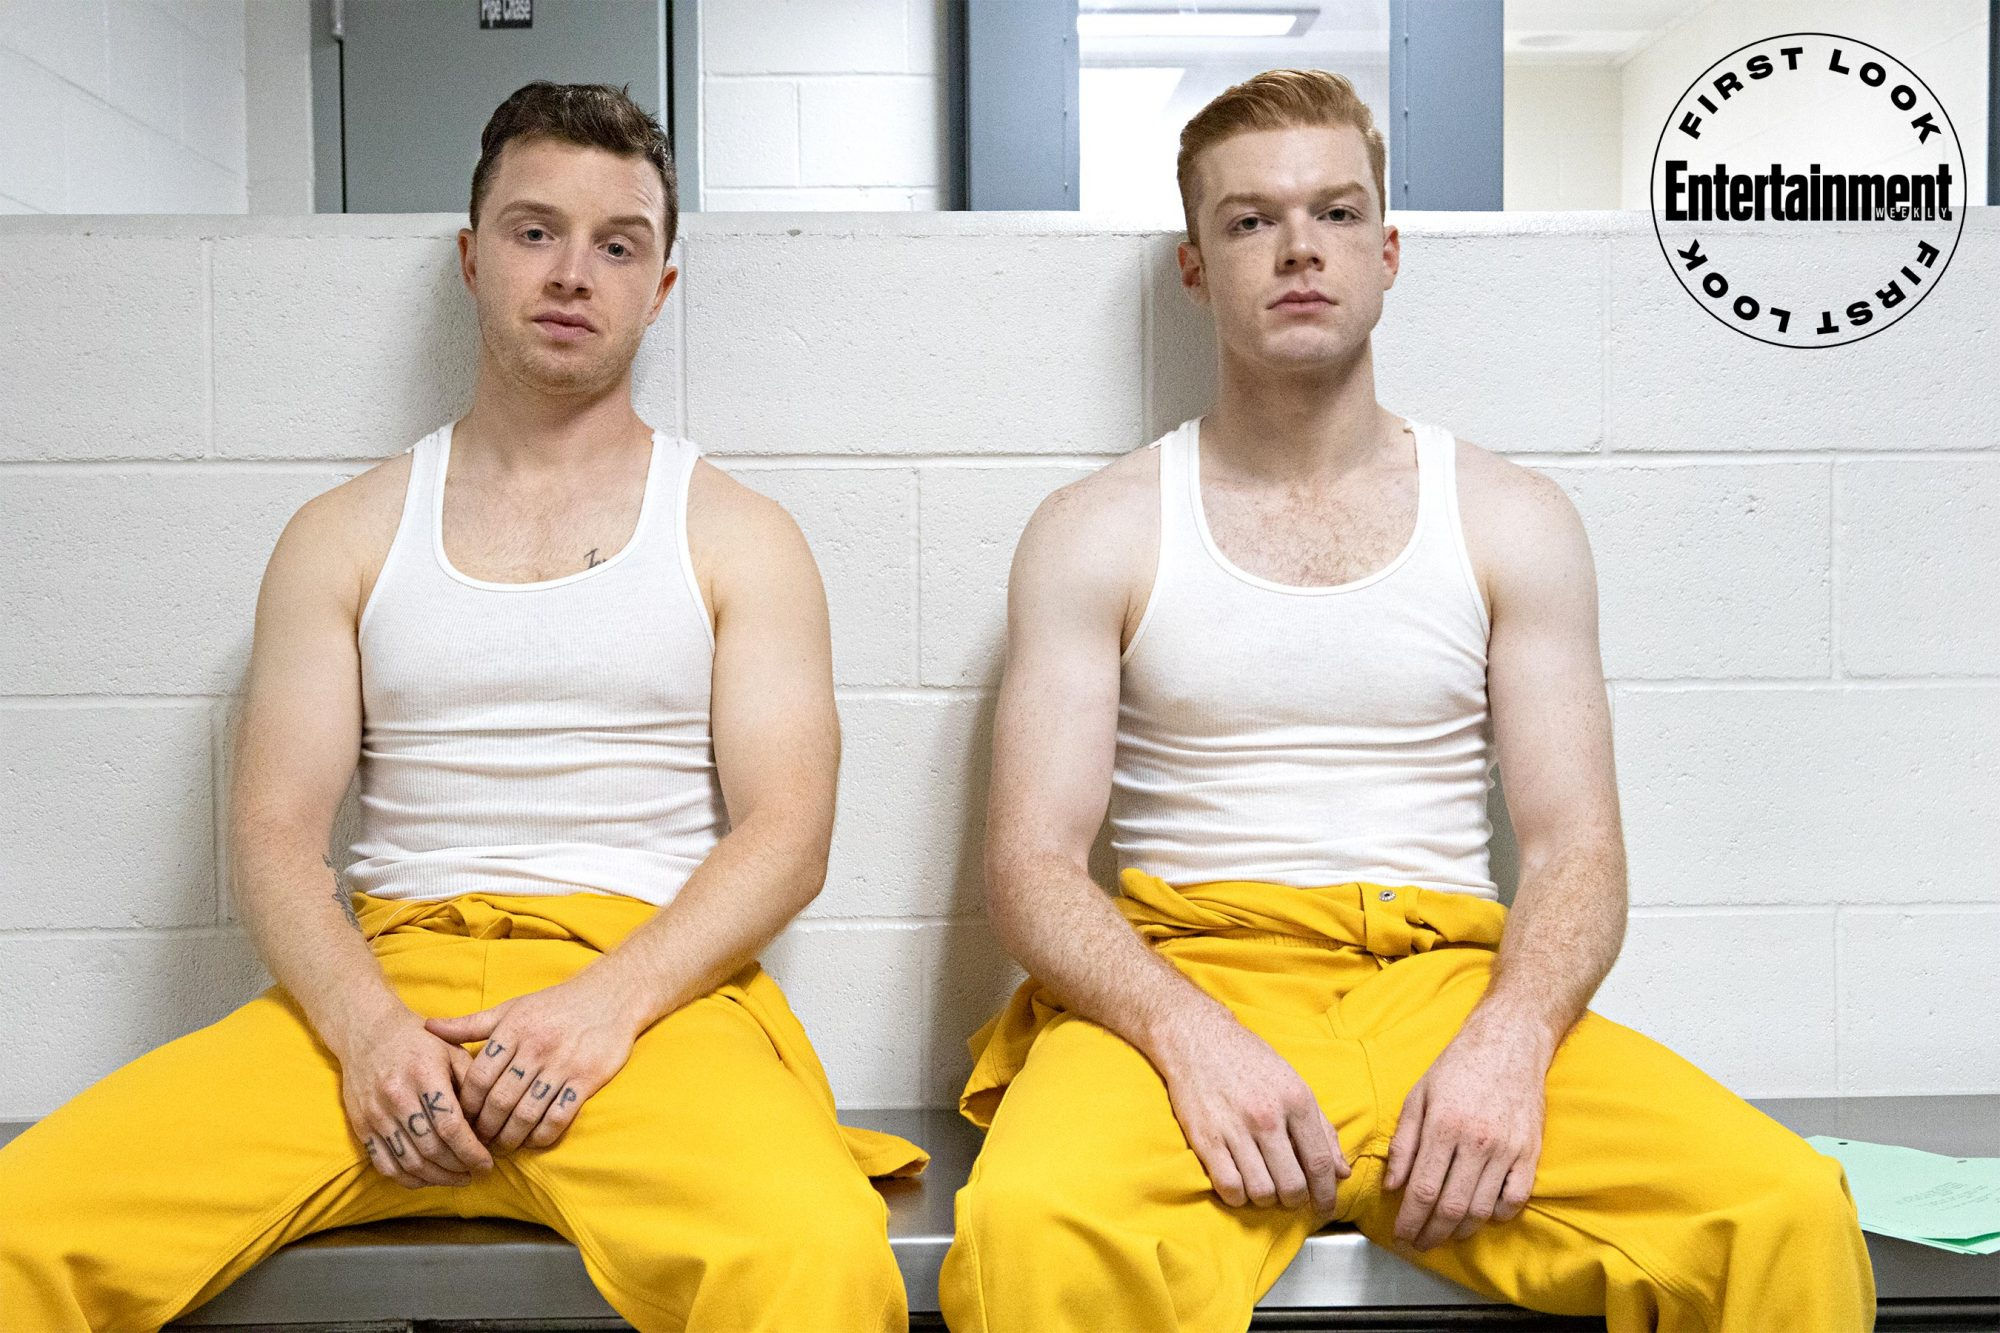 SHAMELESS (L-R): Noel Fisher as Mickey Milkovich and Cameron Monaghan as Ian Gallagher